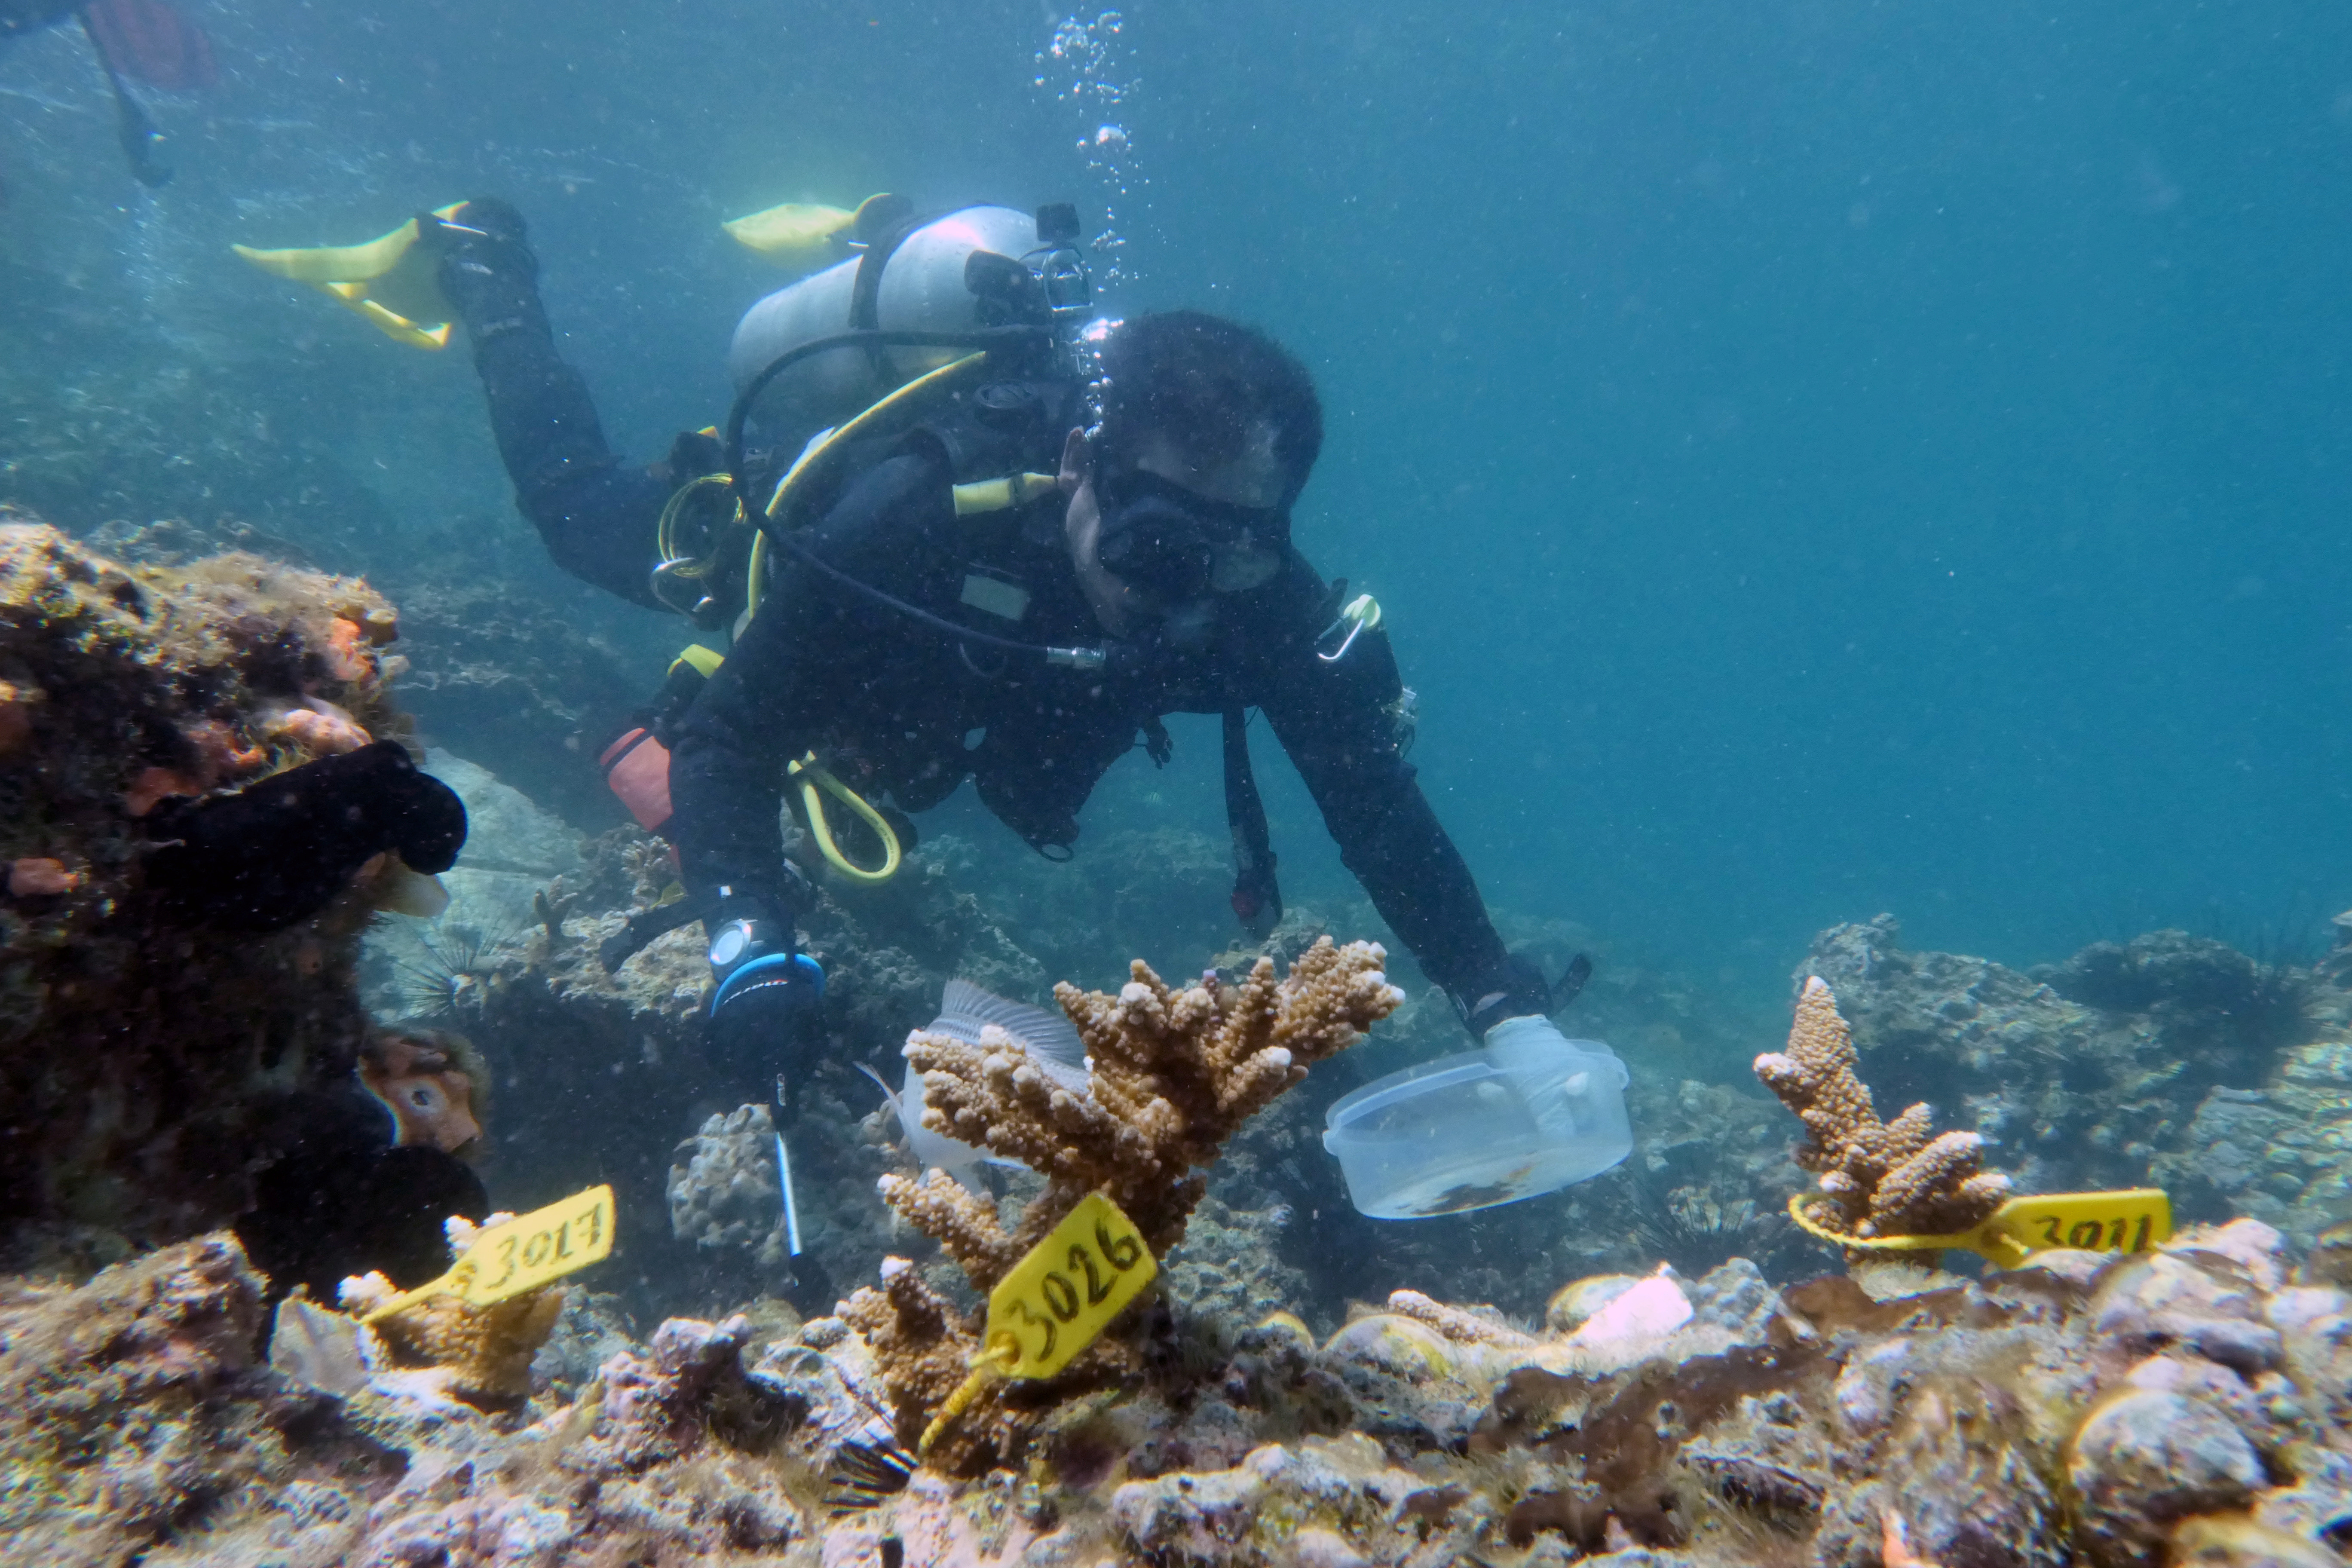 A diver inspects transplanted coral near Dibba Port in Fujairah, United Arab Emirates, June 15, 2020. Picture taken June 15, 2020. REUTERS/Christopher Pike - RC2MBH9IA8NL